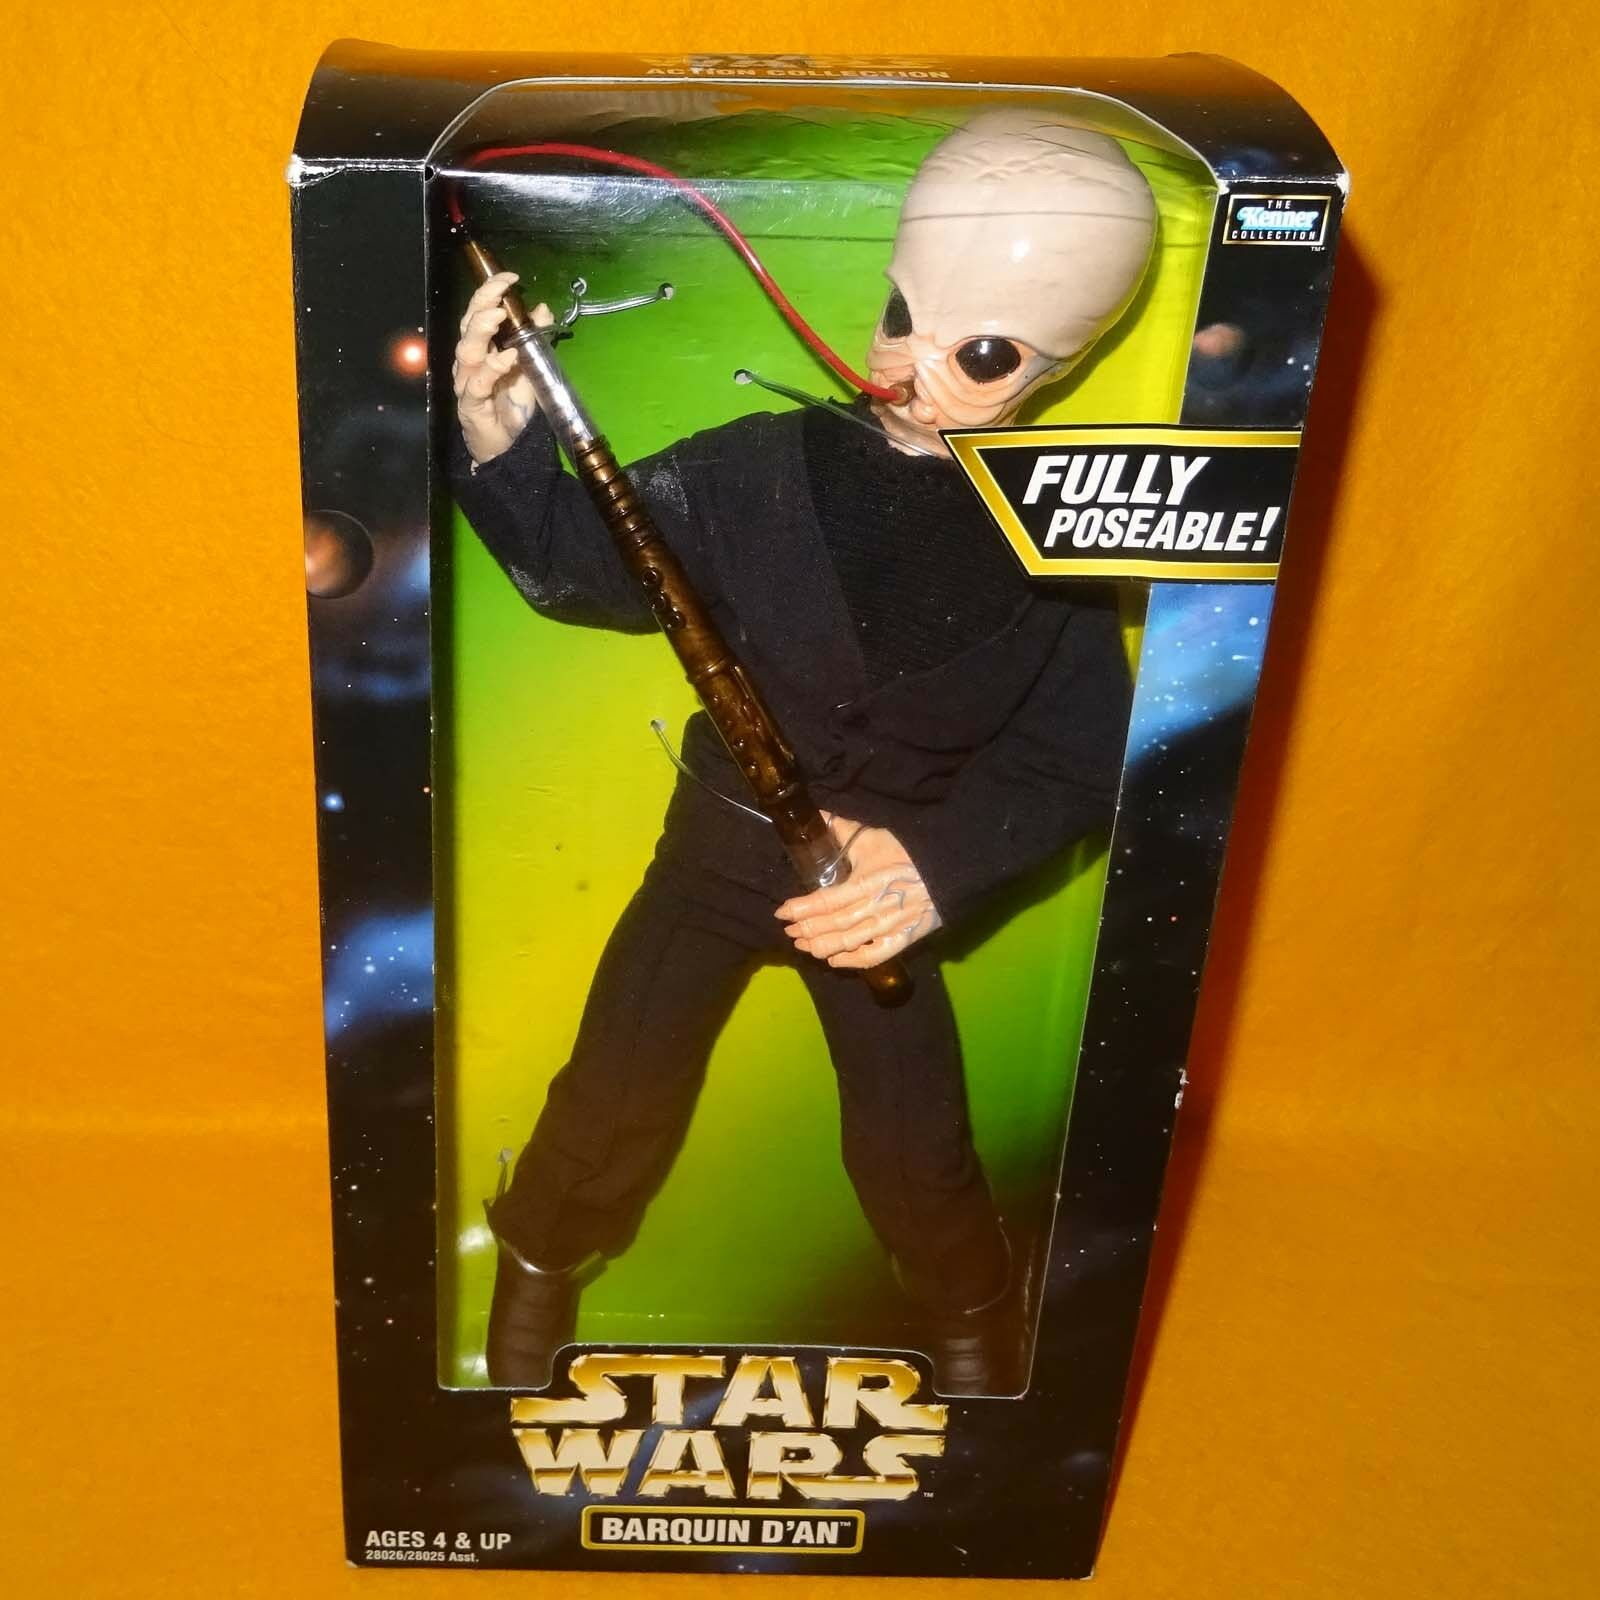 1998 HASBRO STAR WARS THE KENNER COLLECTION BARQUIN D'AN 13  ACTION FIGURE BOXED